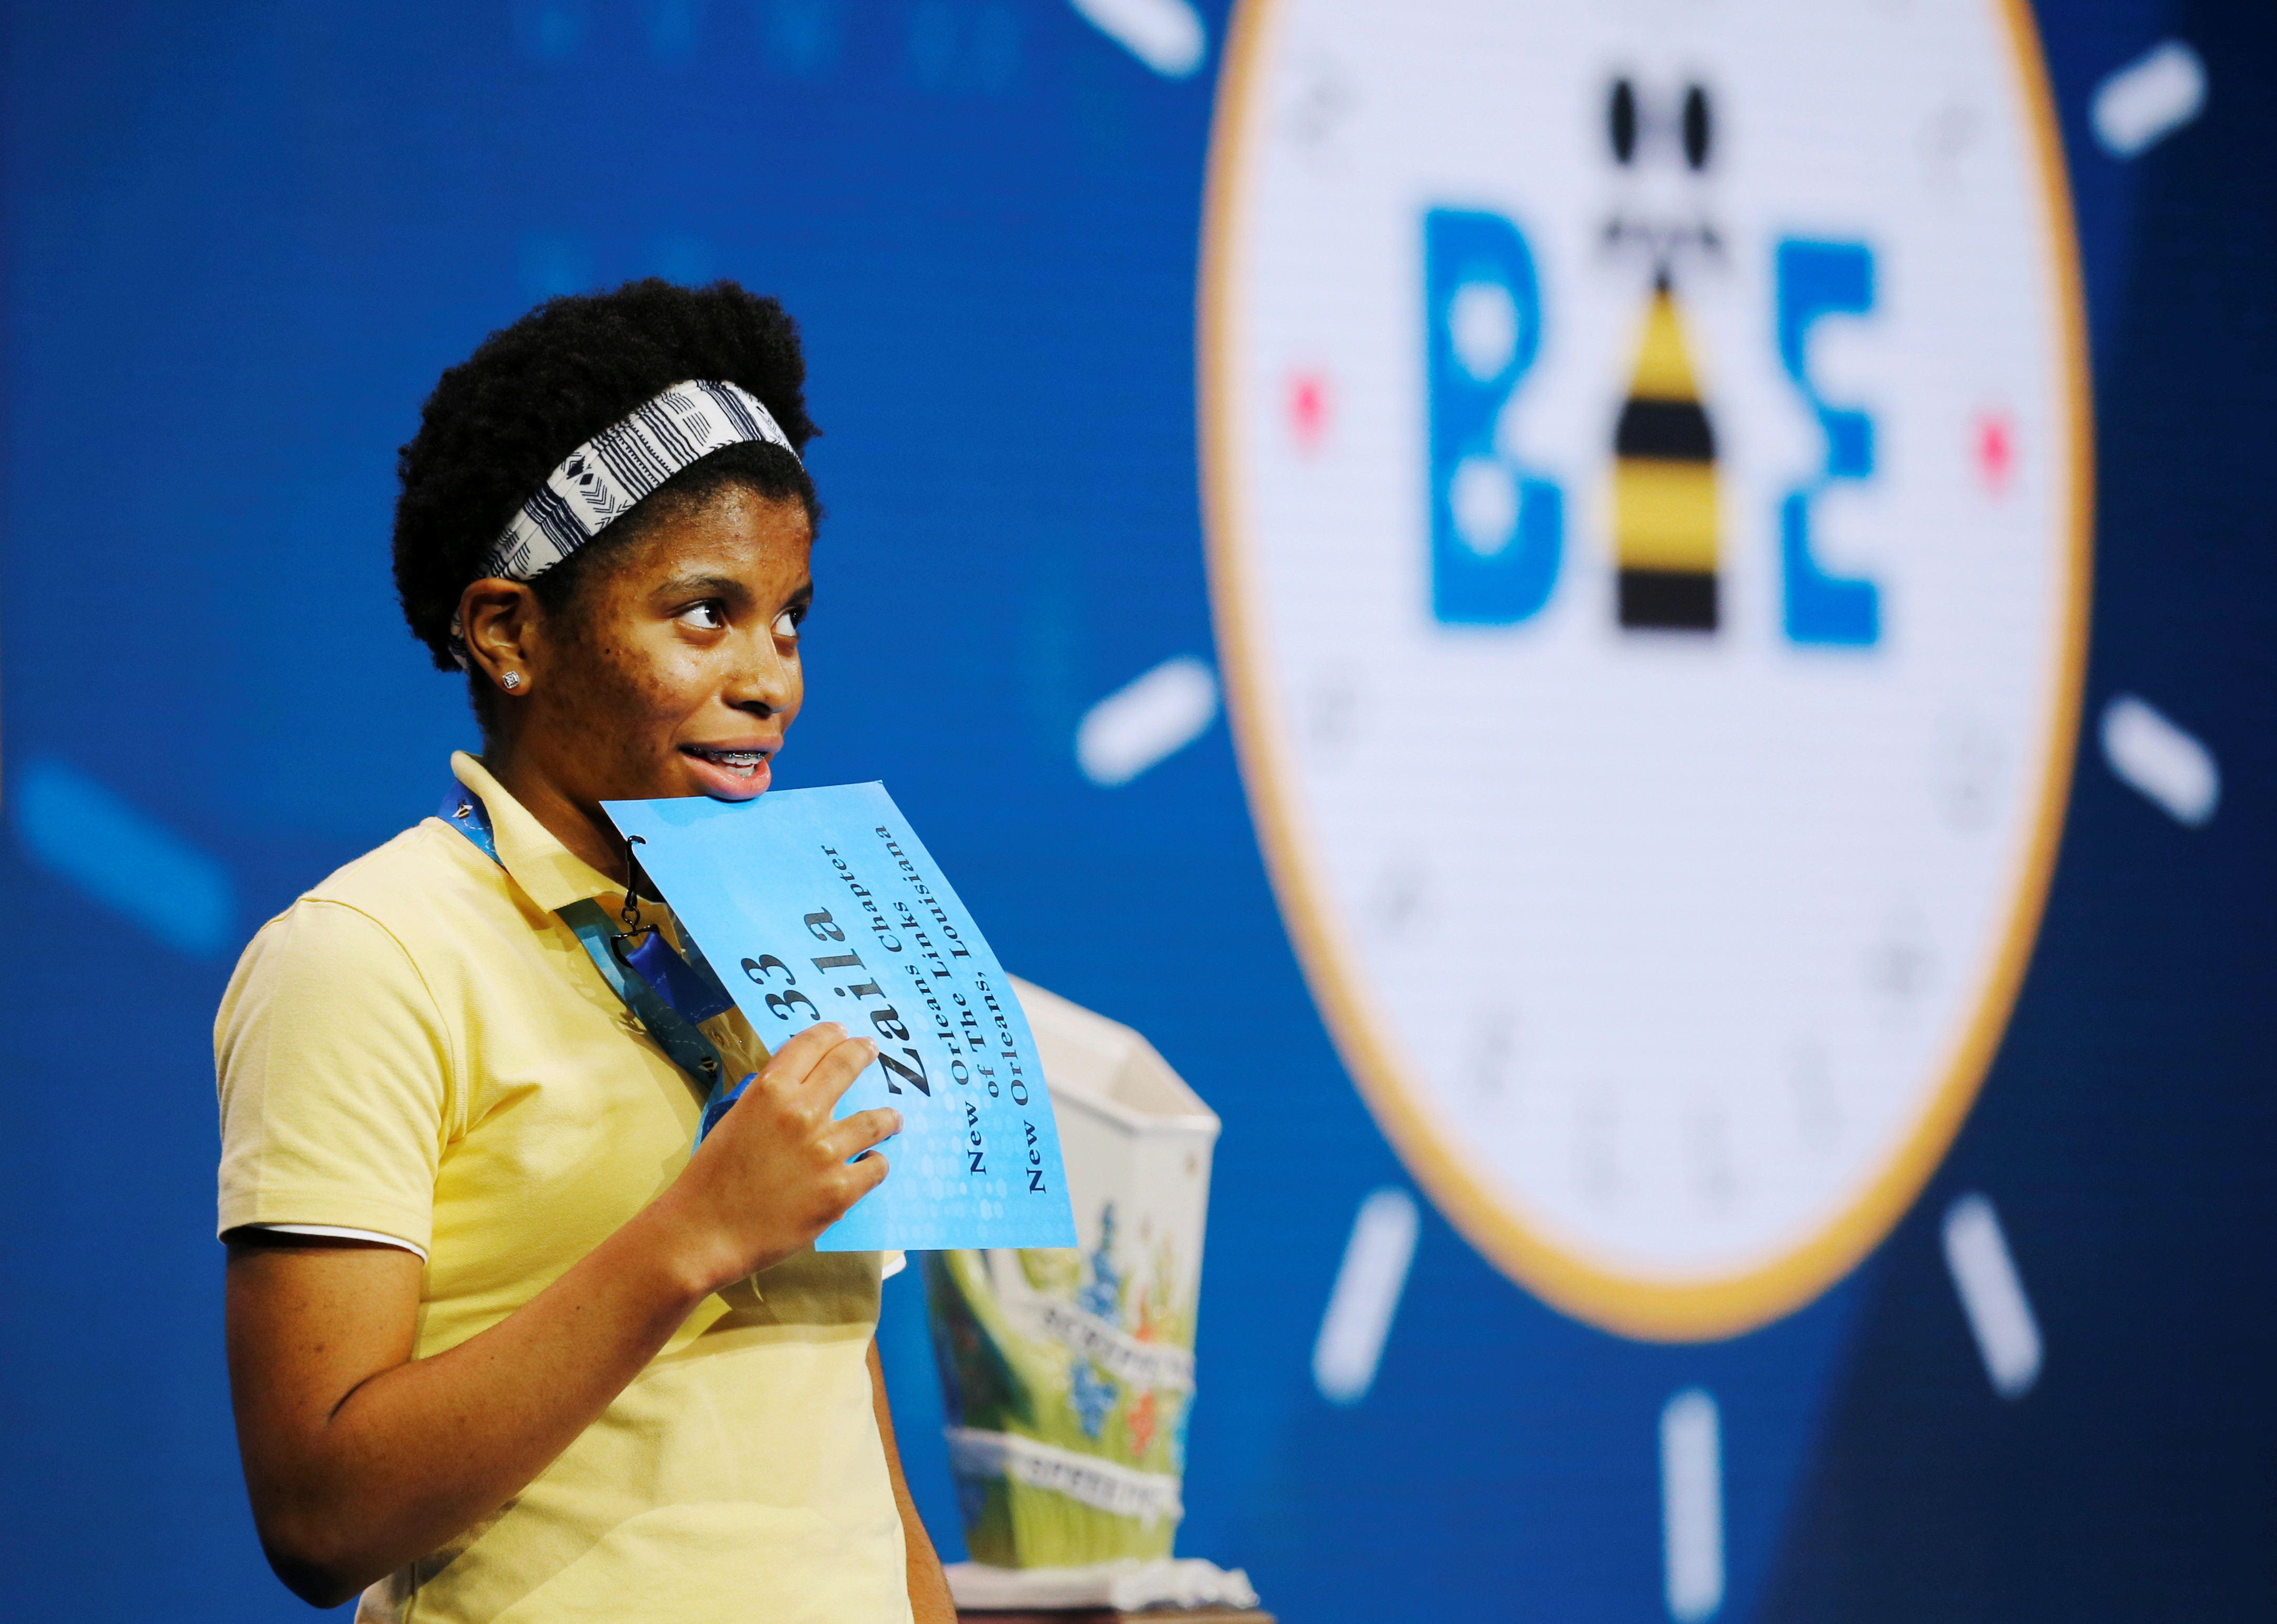 Zaila Avant-garde, 14, from New Orleans, Louisiana, takes part in the 2021 Scripps National Spelling Bee Finals at Disney World